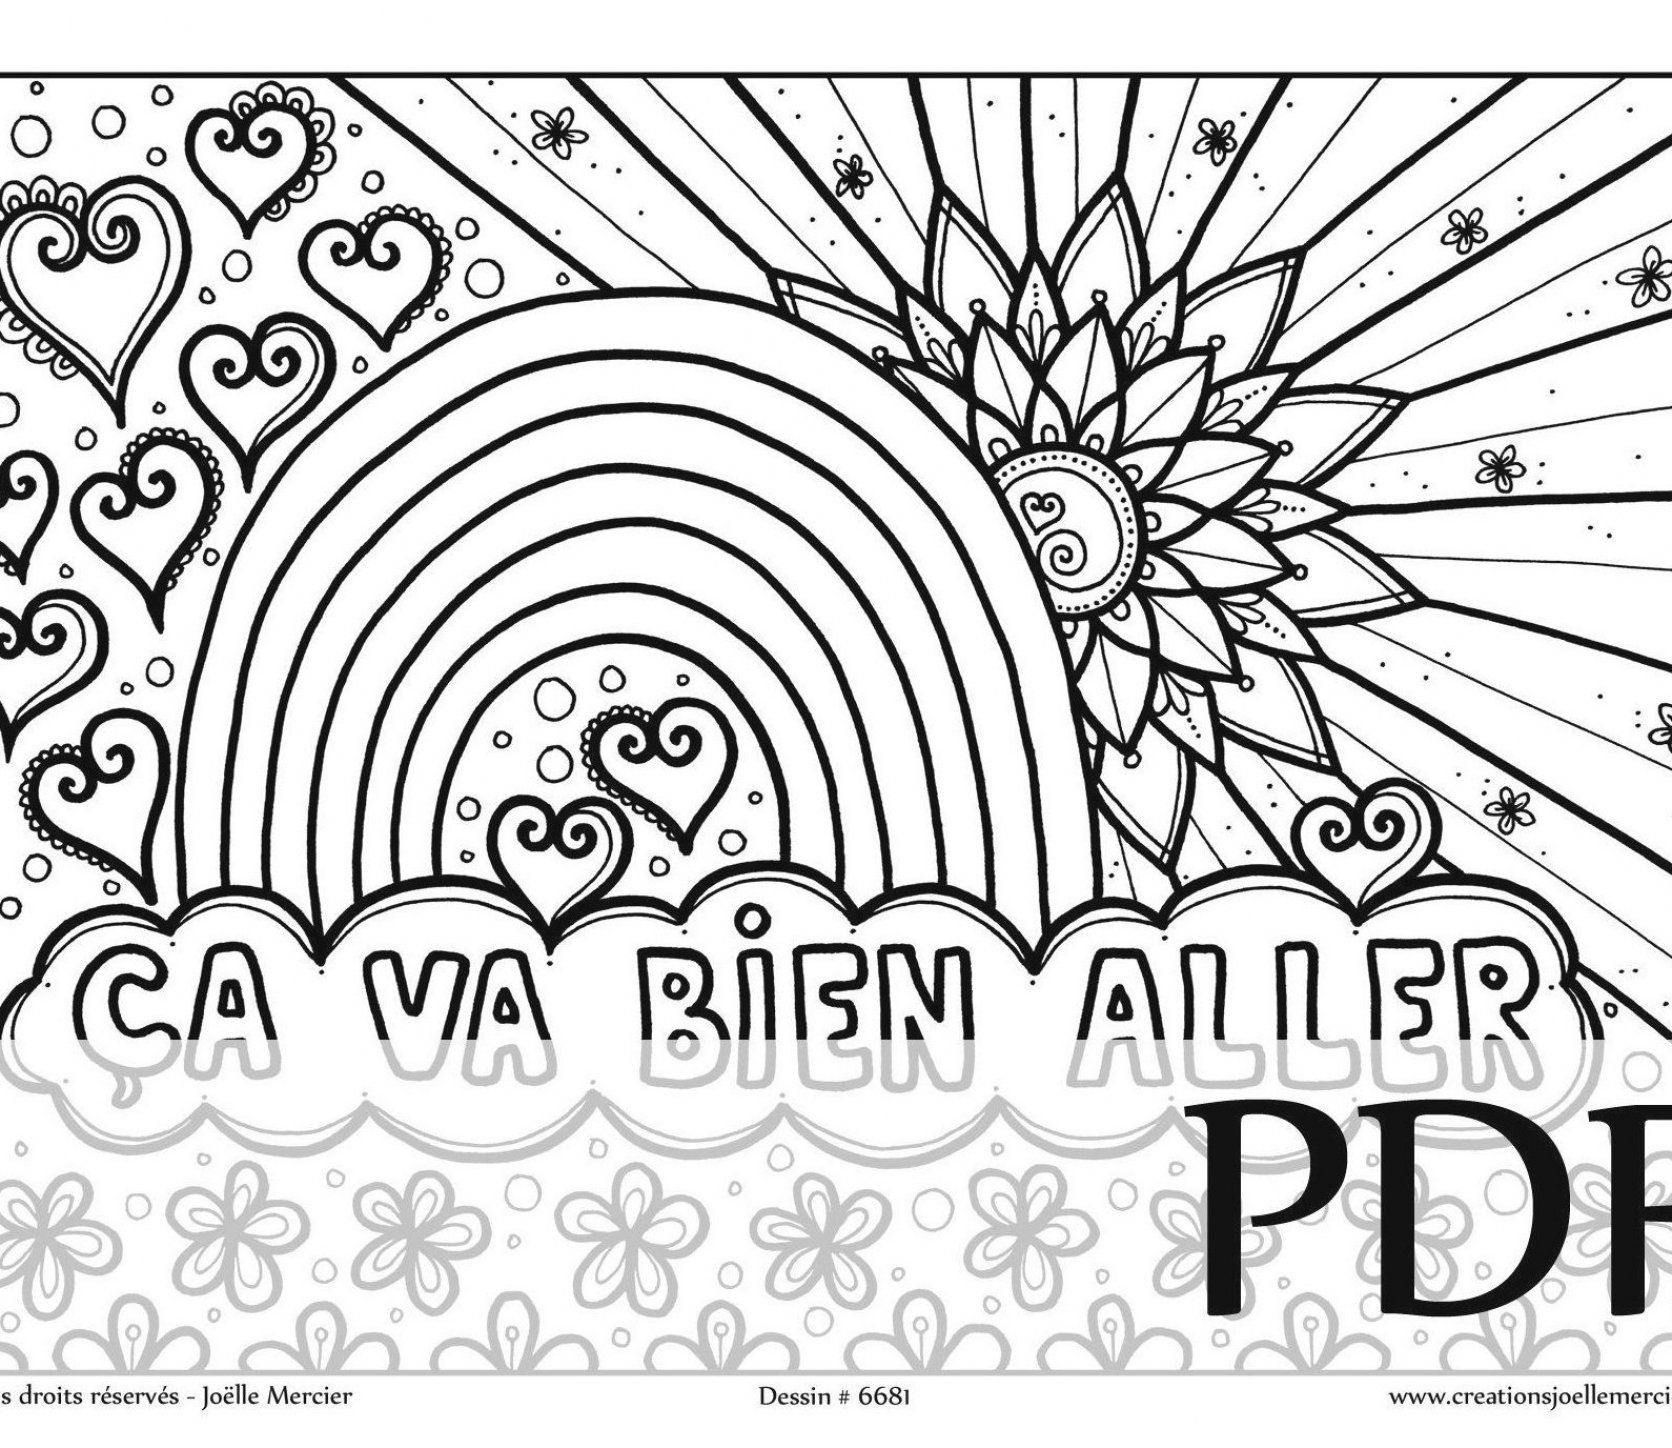 Pin By Veronica Livia On My Pretty Nice Board In 2020 Cute Coloring Pages Coloring Pages Mandala